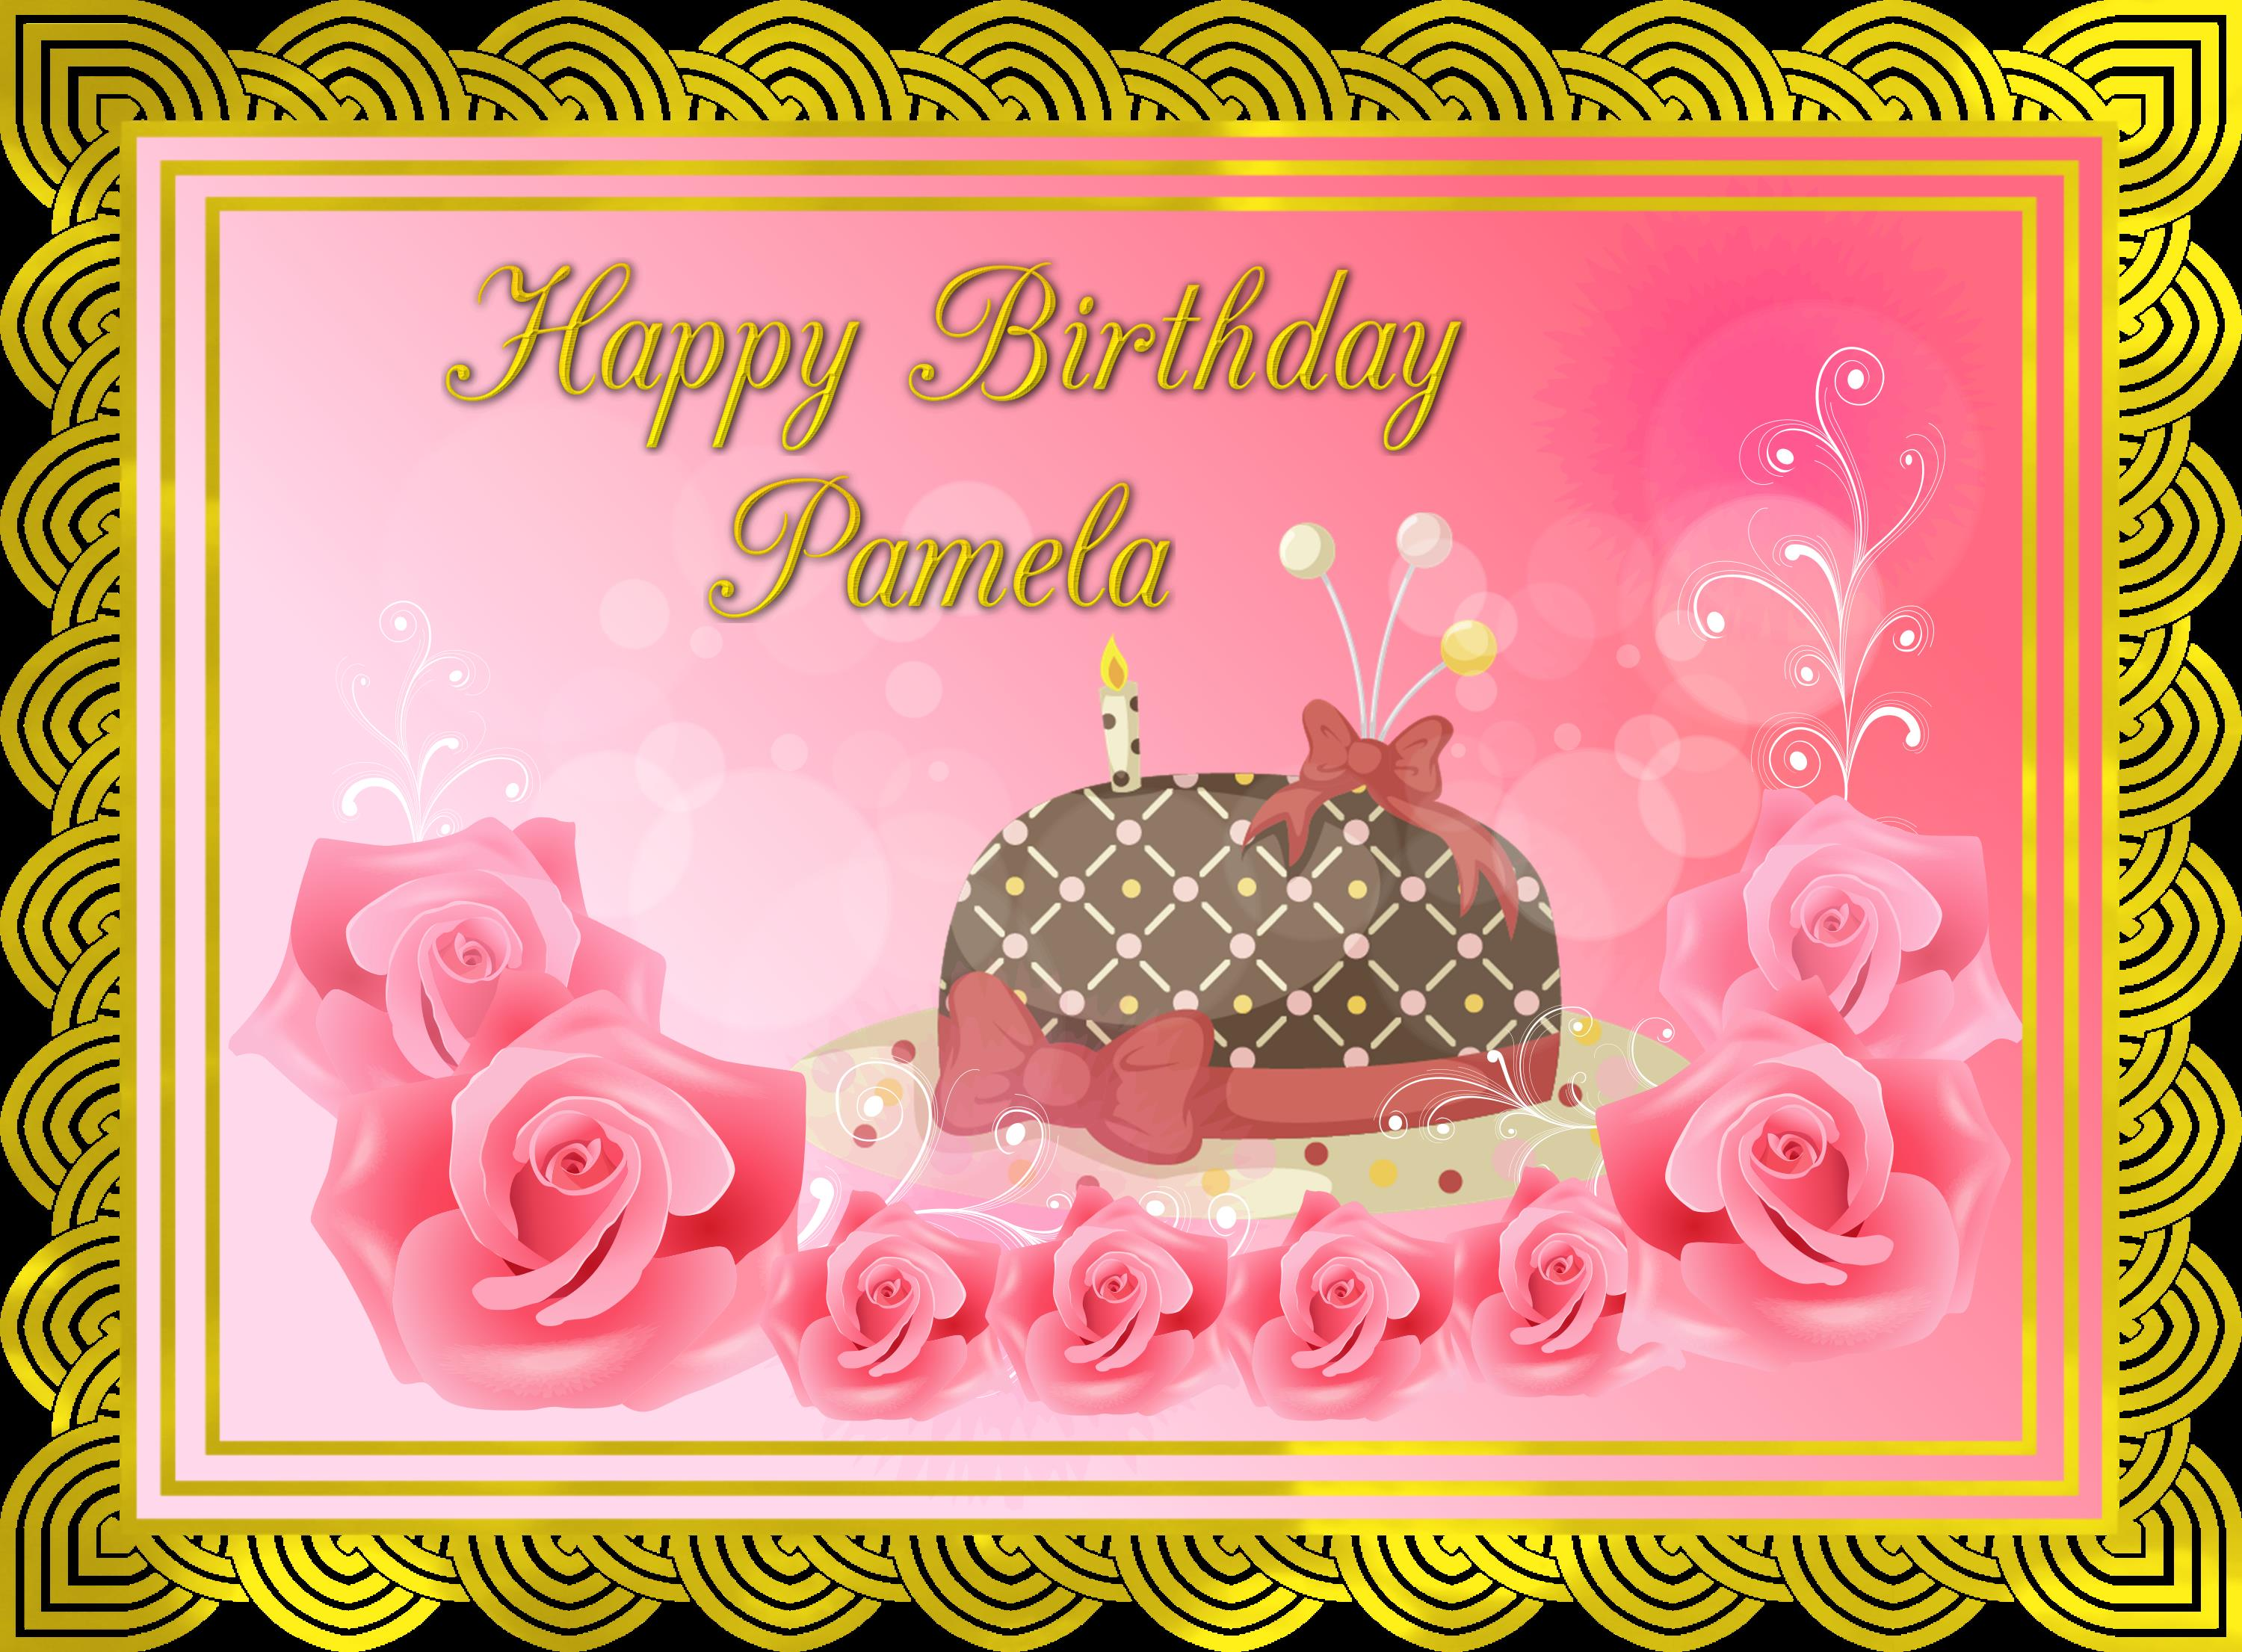 happy birthday pam images ; happy_birthday_pamela_by_bbvzla-dan459o